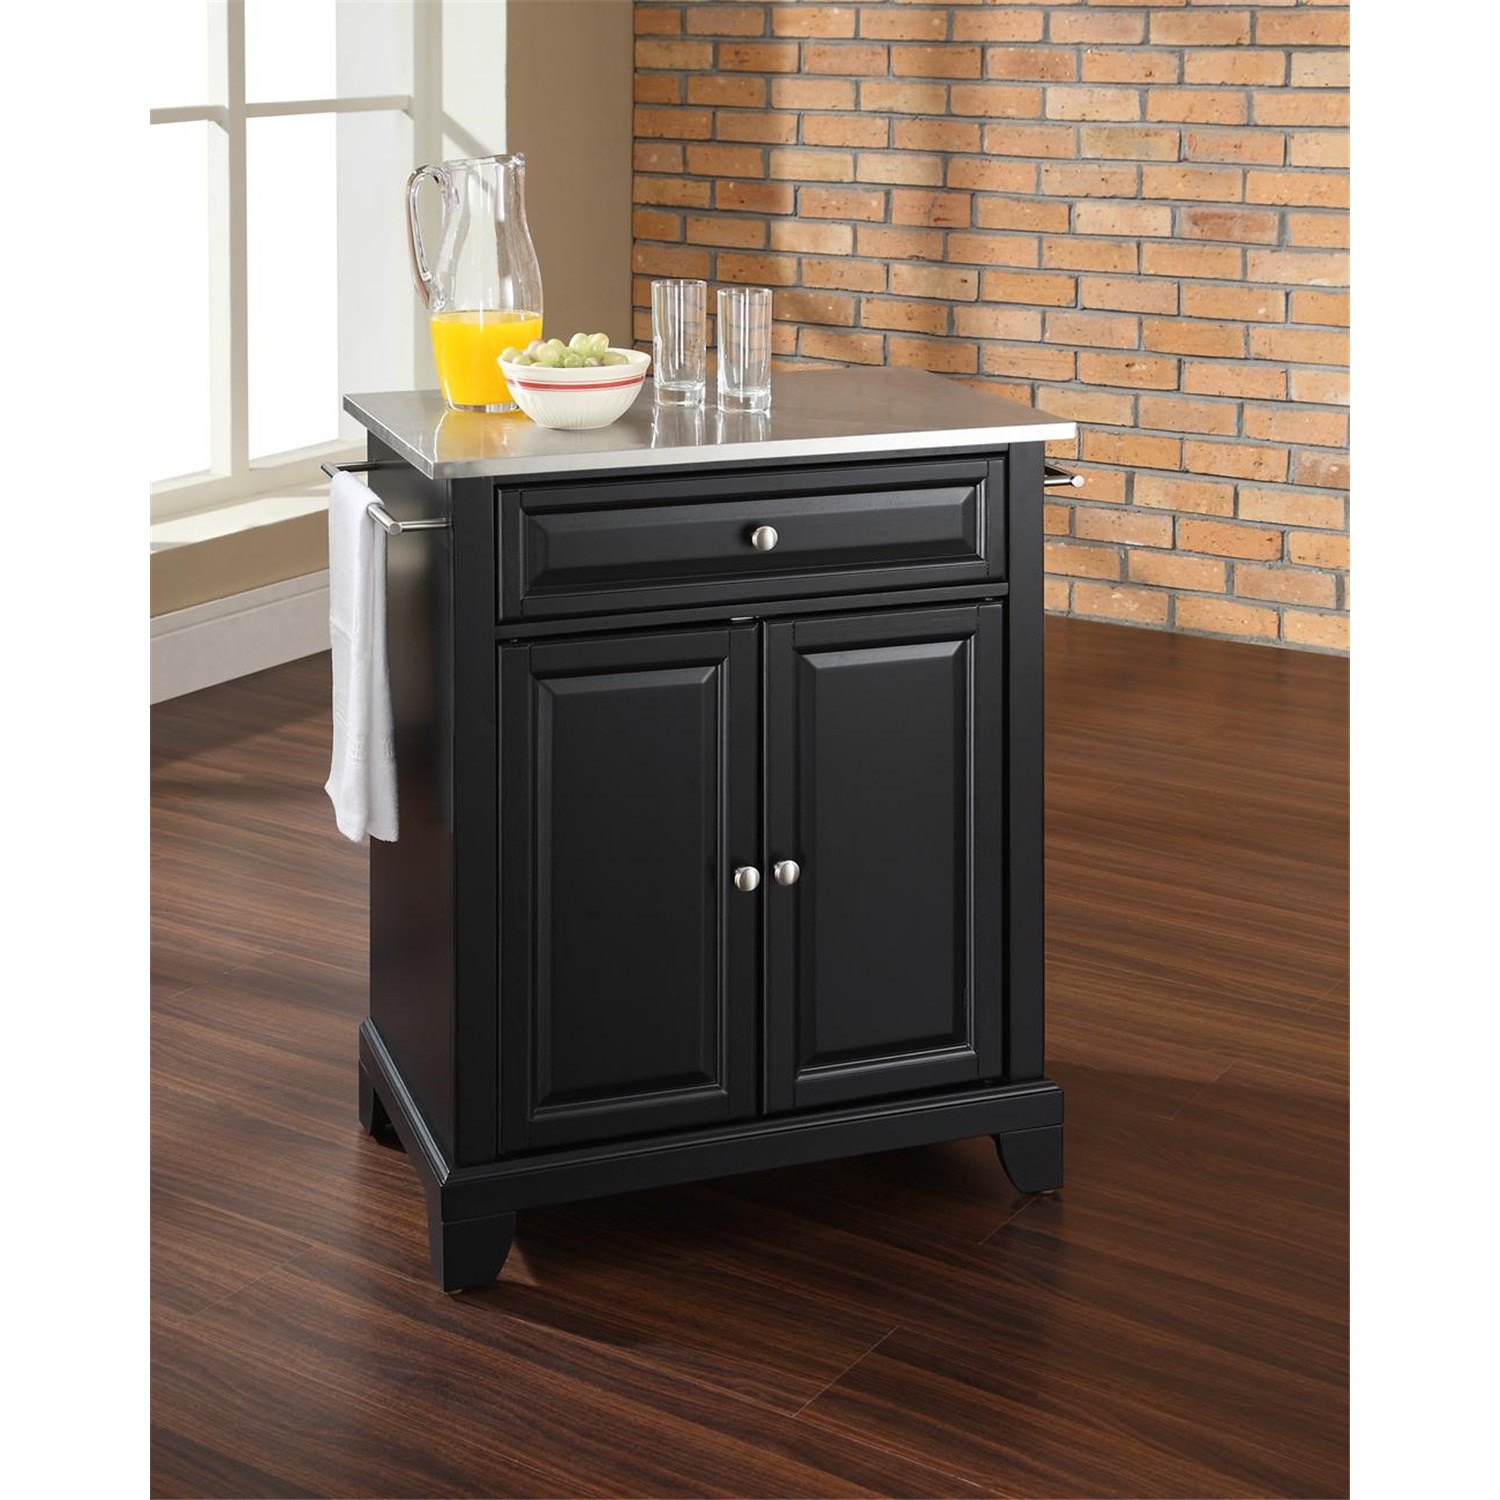 Newport Portable Kitchen Island | OJCommerce